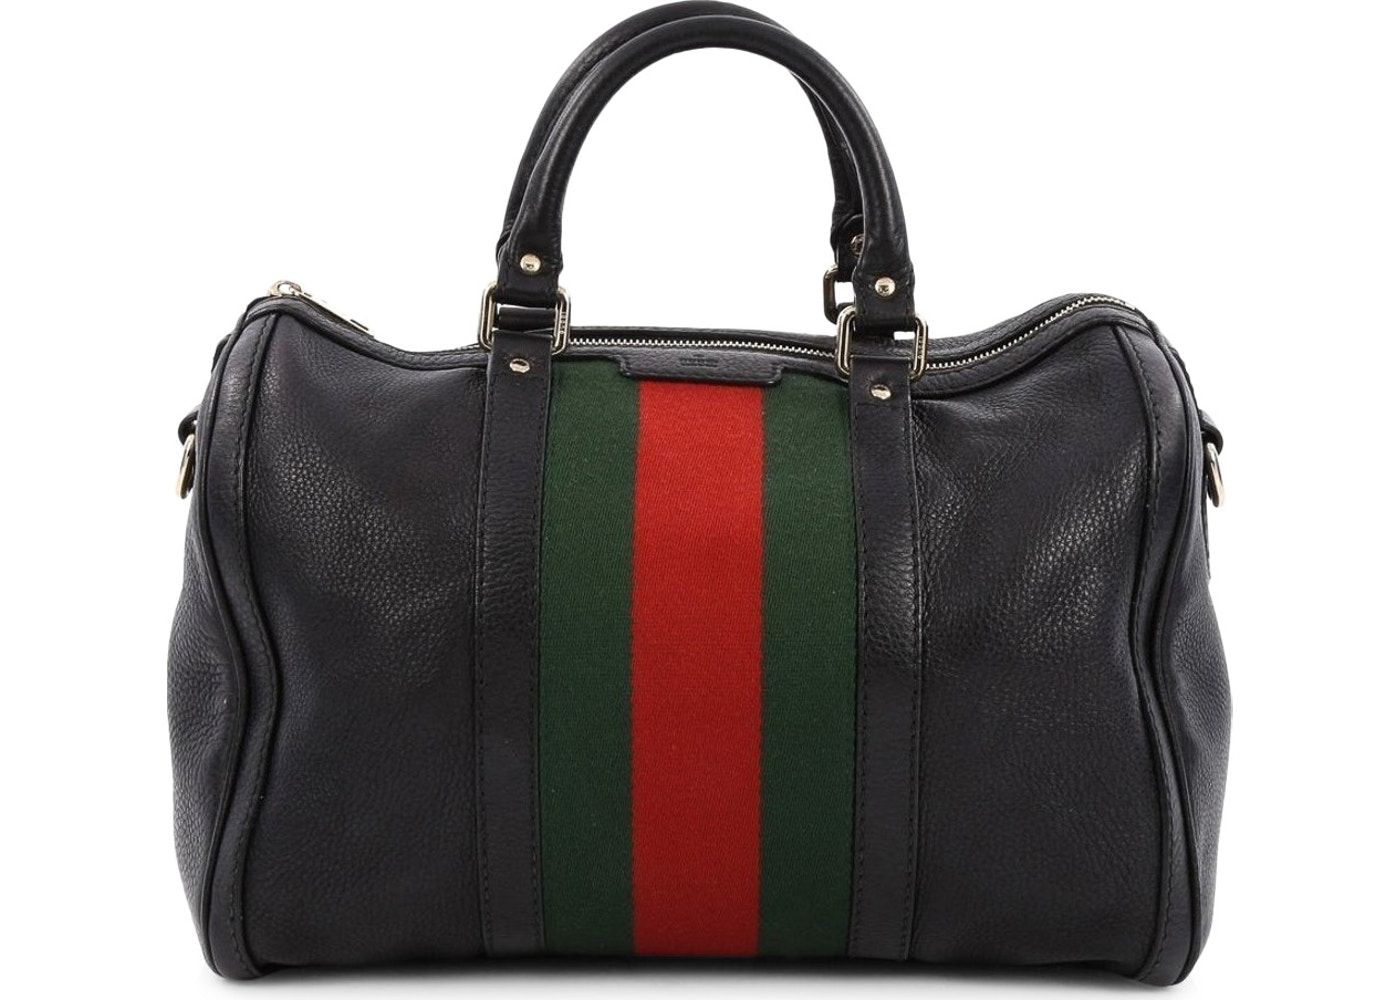 0b94482970a Gucci Vintage Web Boston Bag Satchel Medium Black